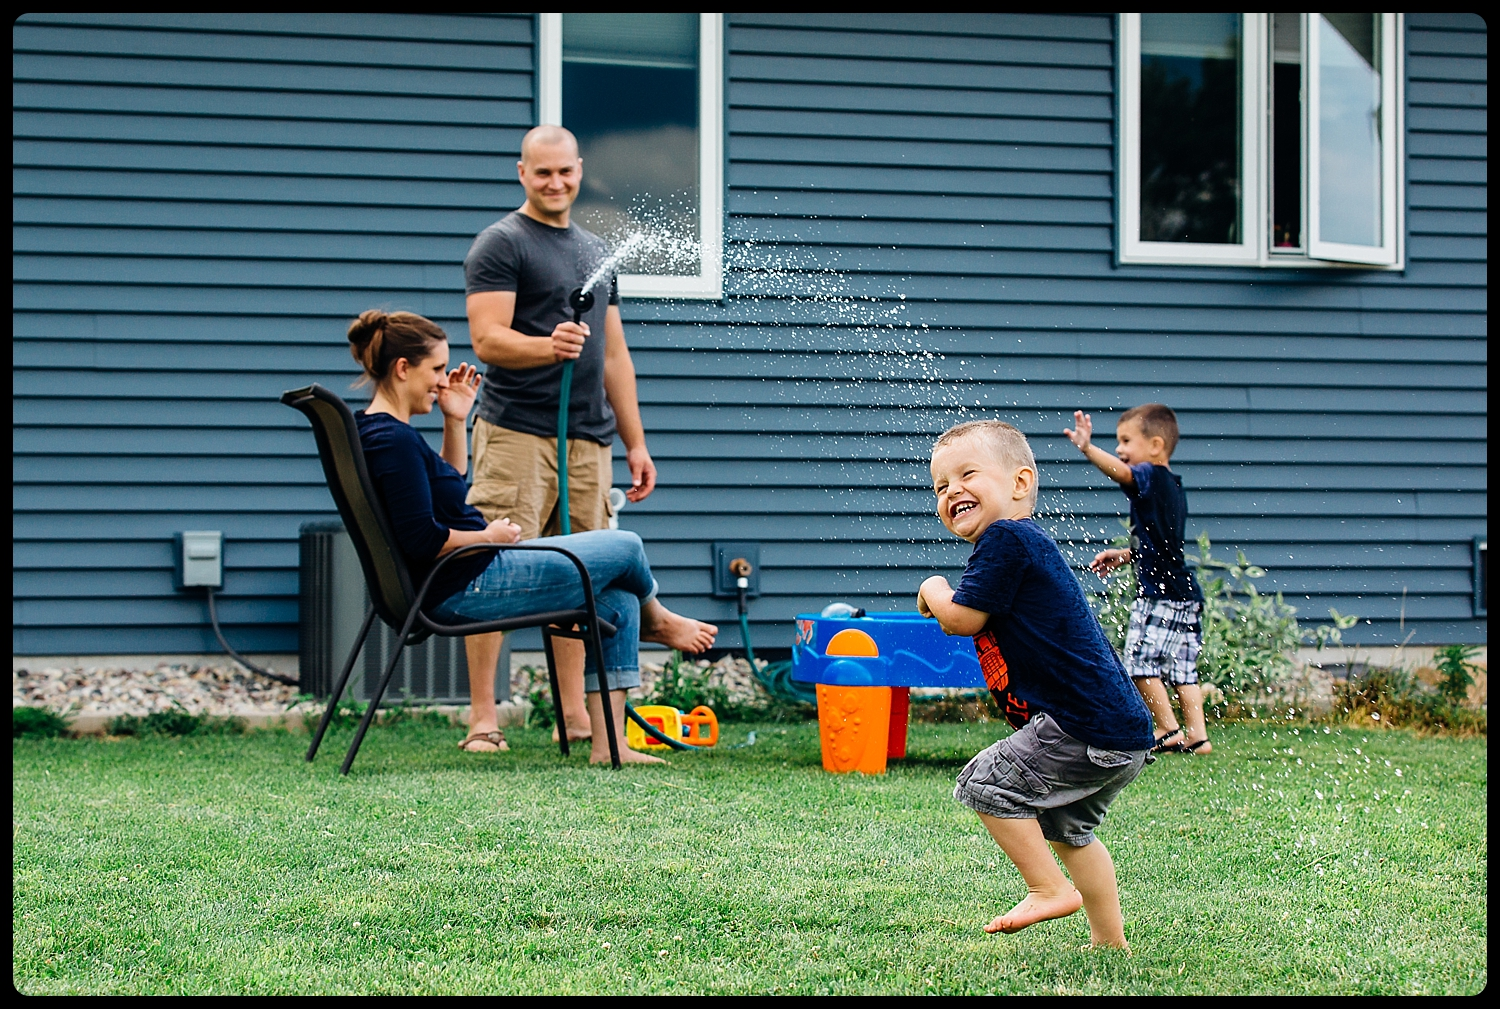 Dad squirts son with hose outside.